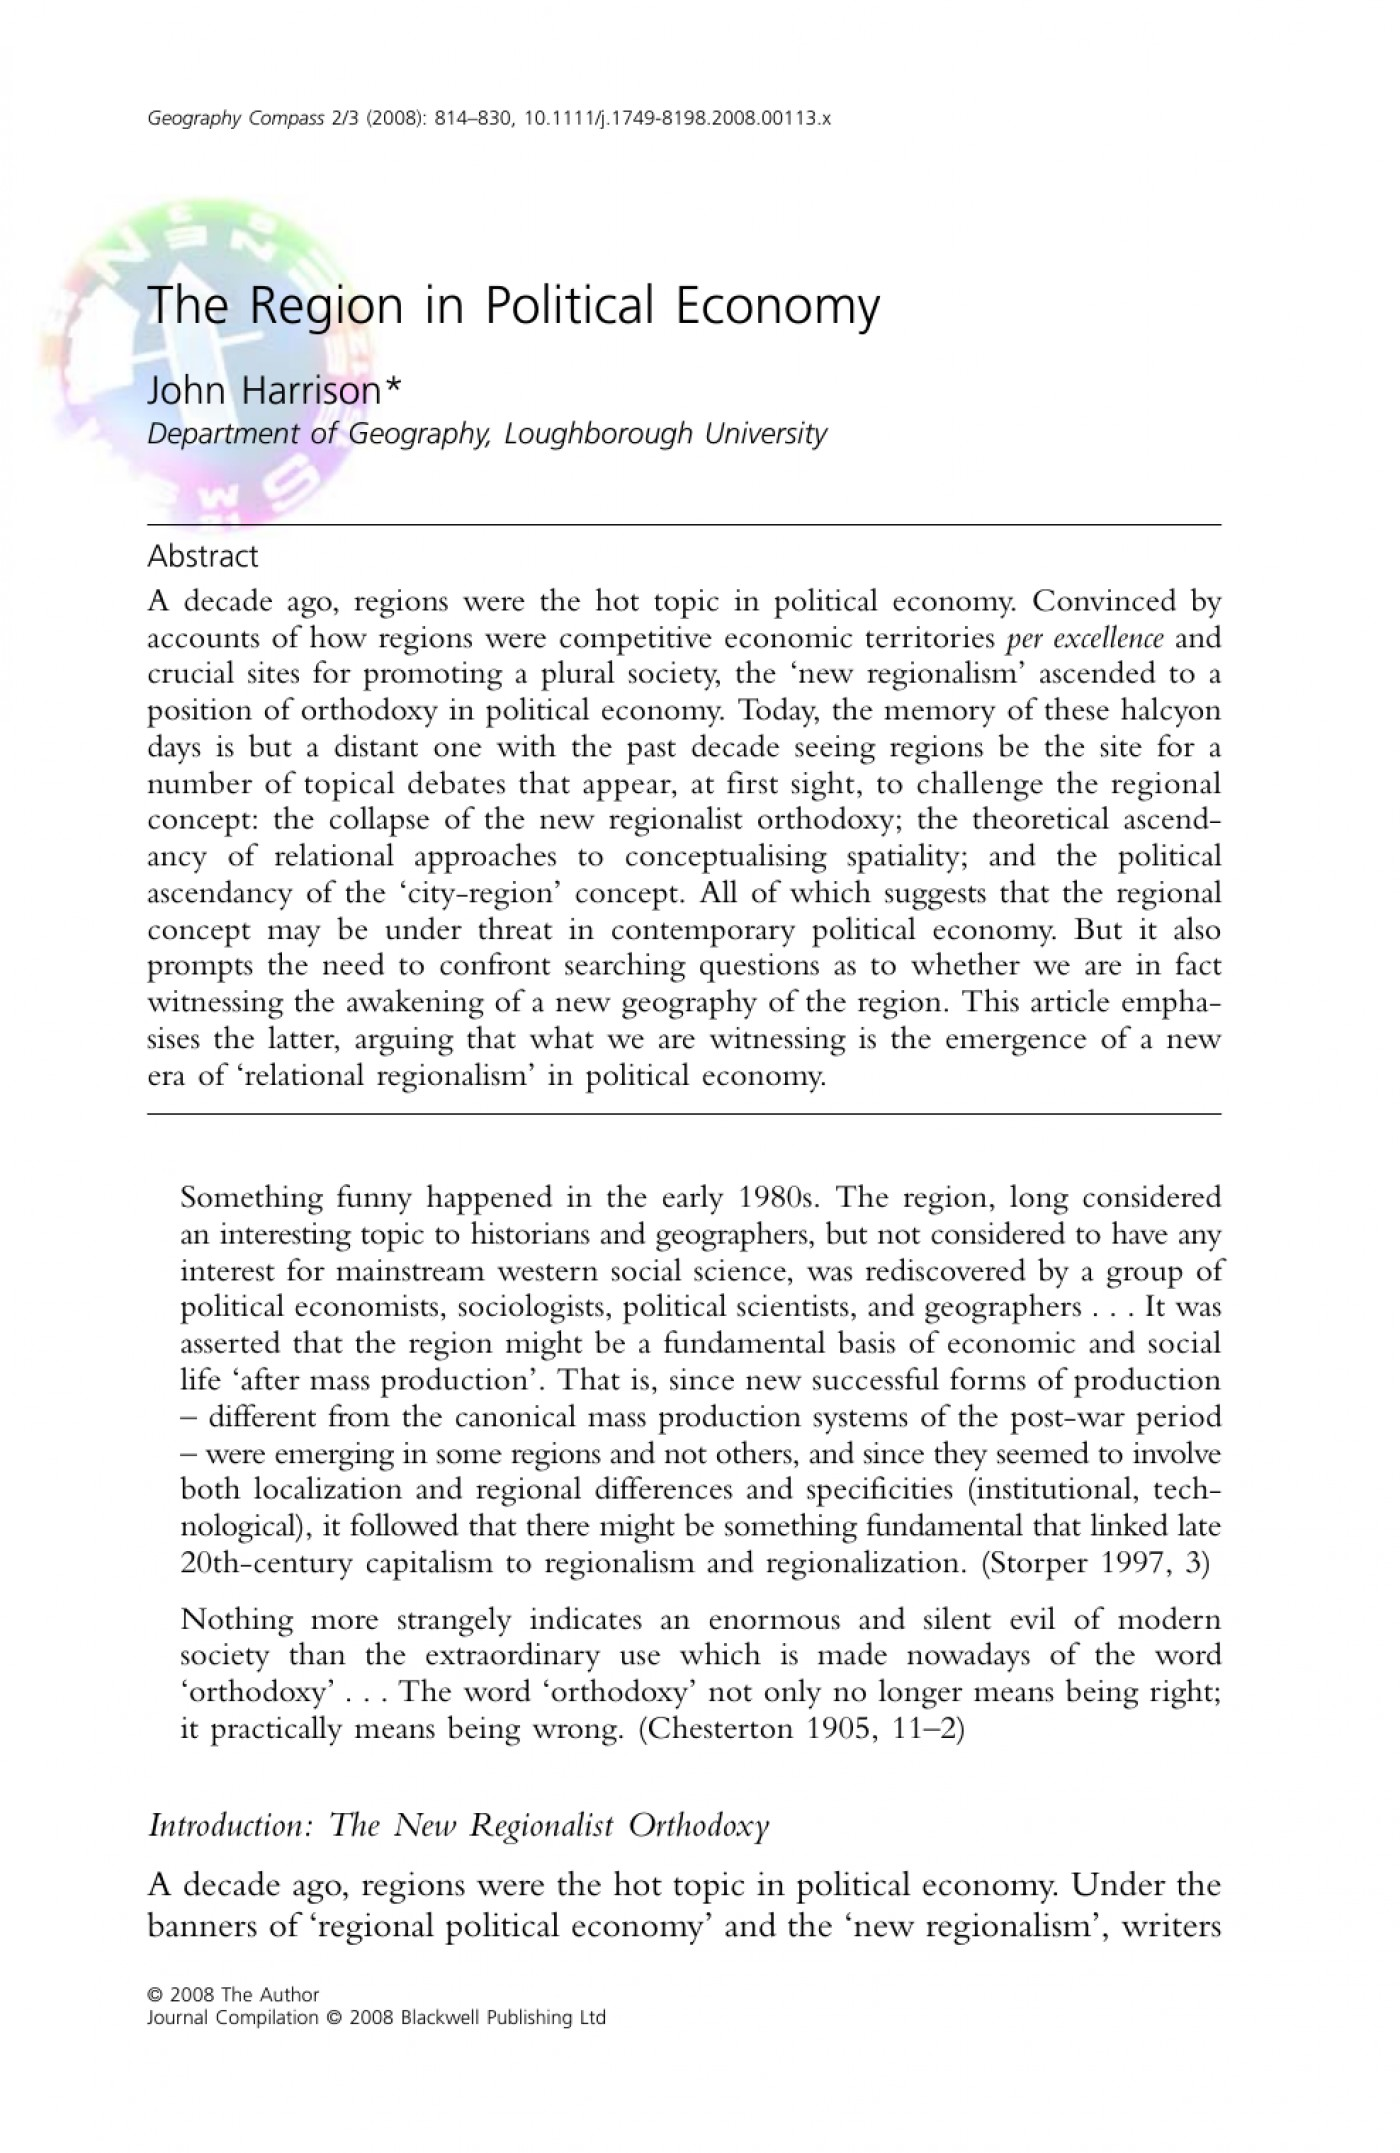 003 Research Paper Political Economy Topics Awesome Global International 1400